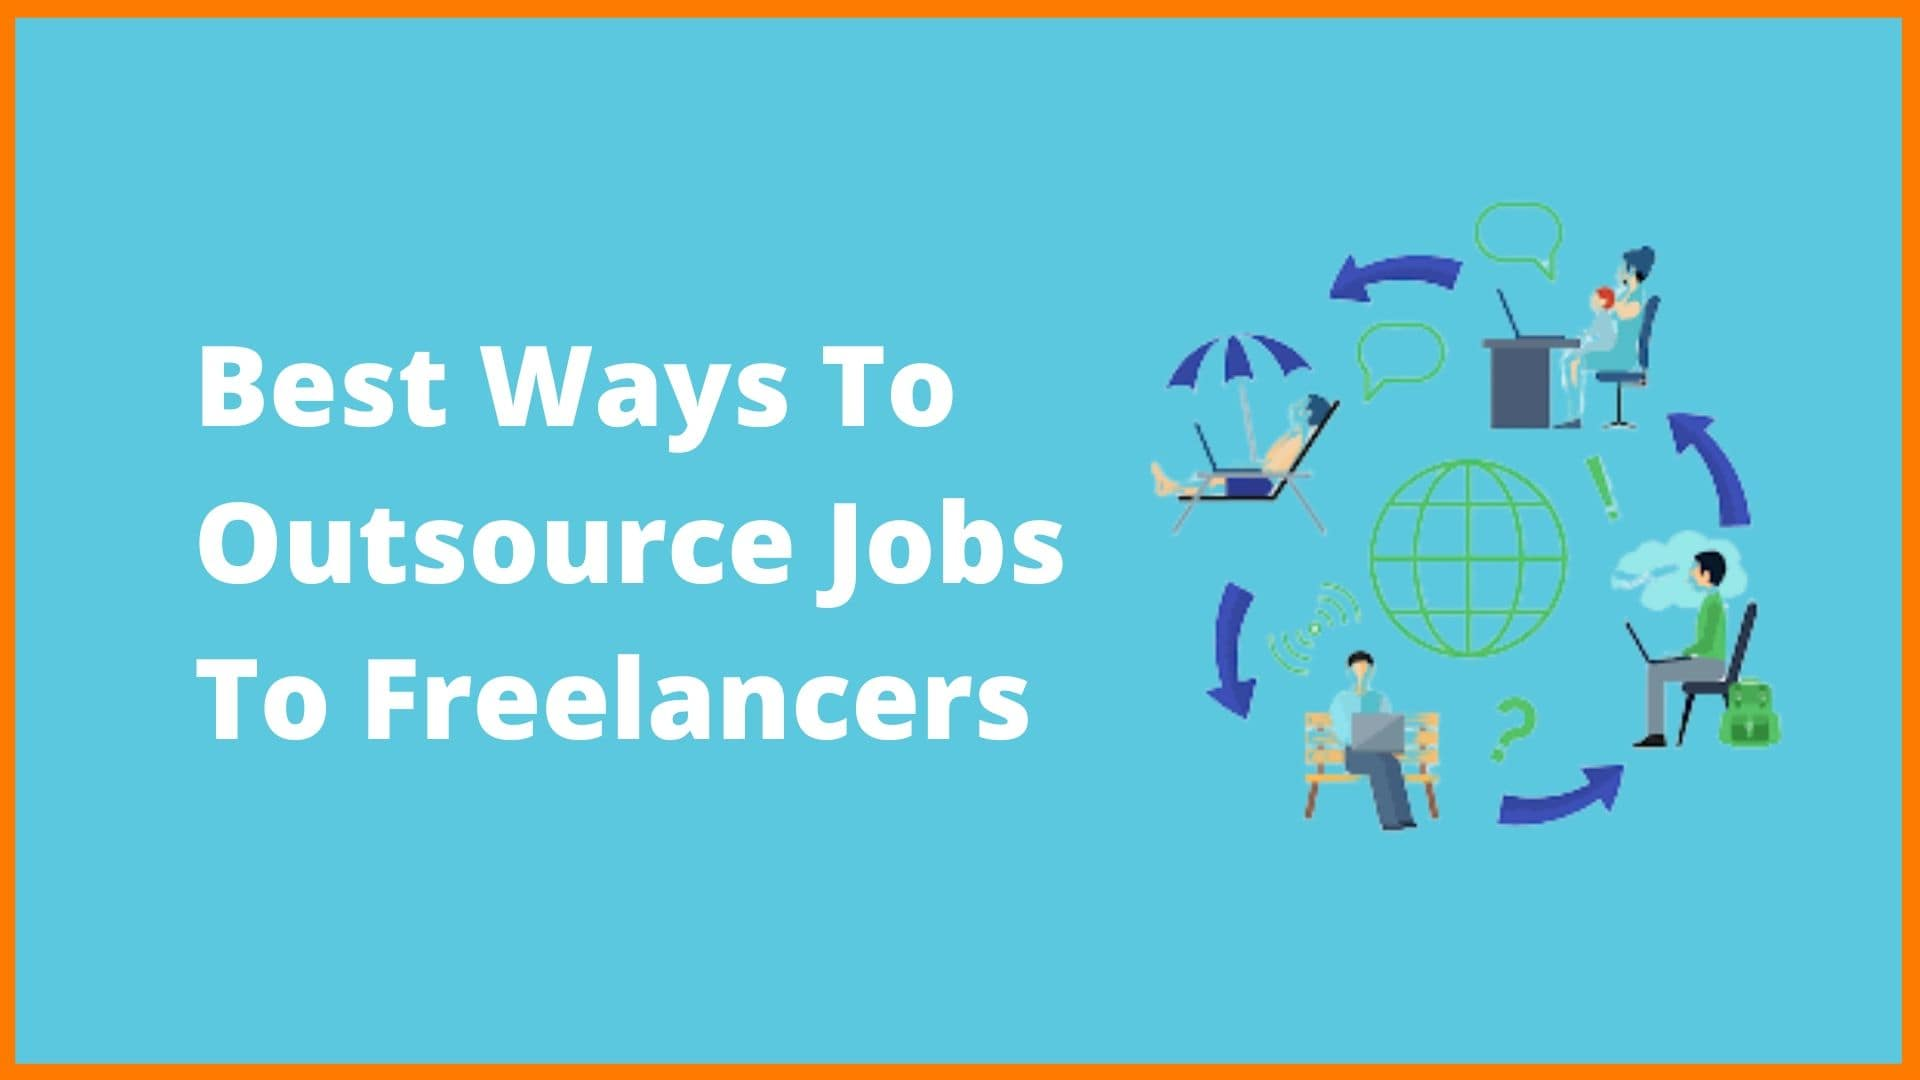 Best Ways To Outsource Jobs to Freelancers